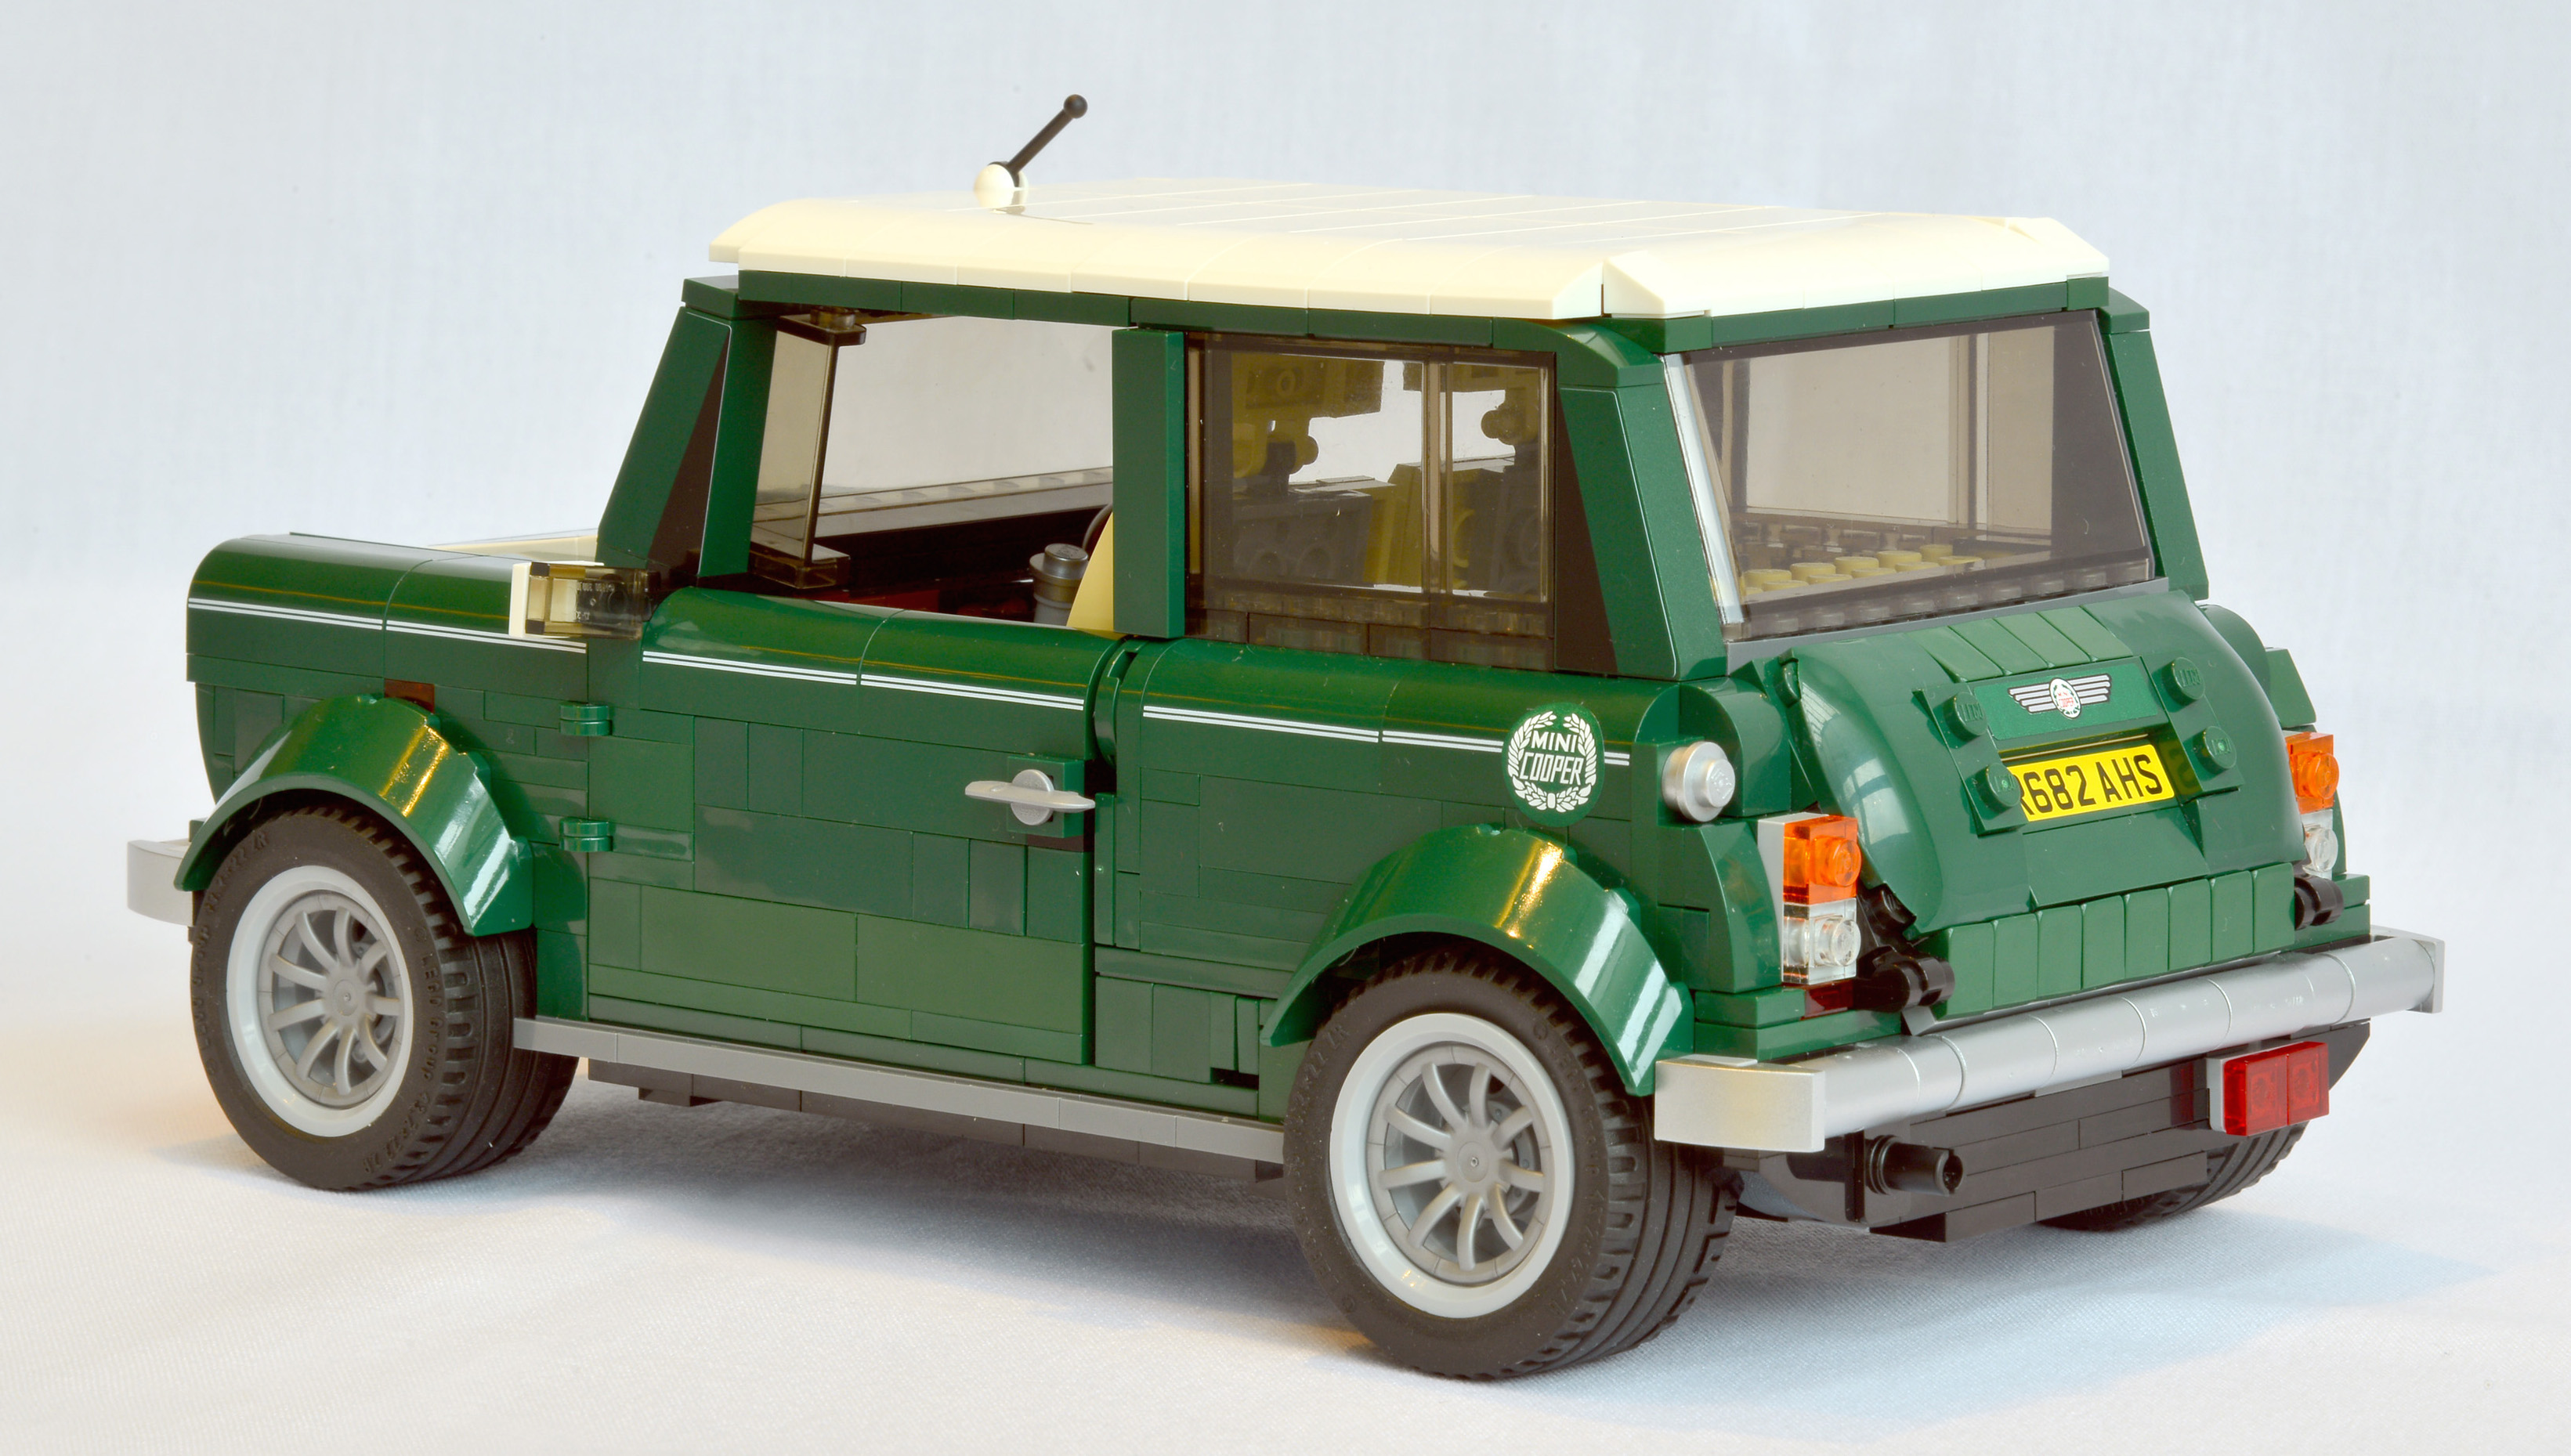 lego mini cooper the little classic goes plastic image. Black Bedroom Furniture Sets. Home Design Ideas